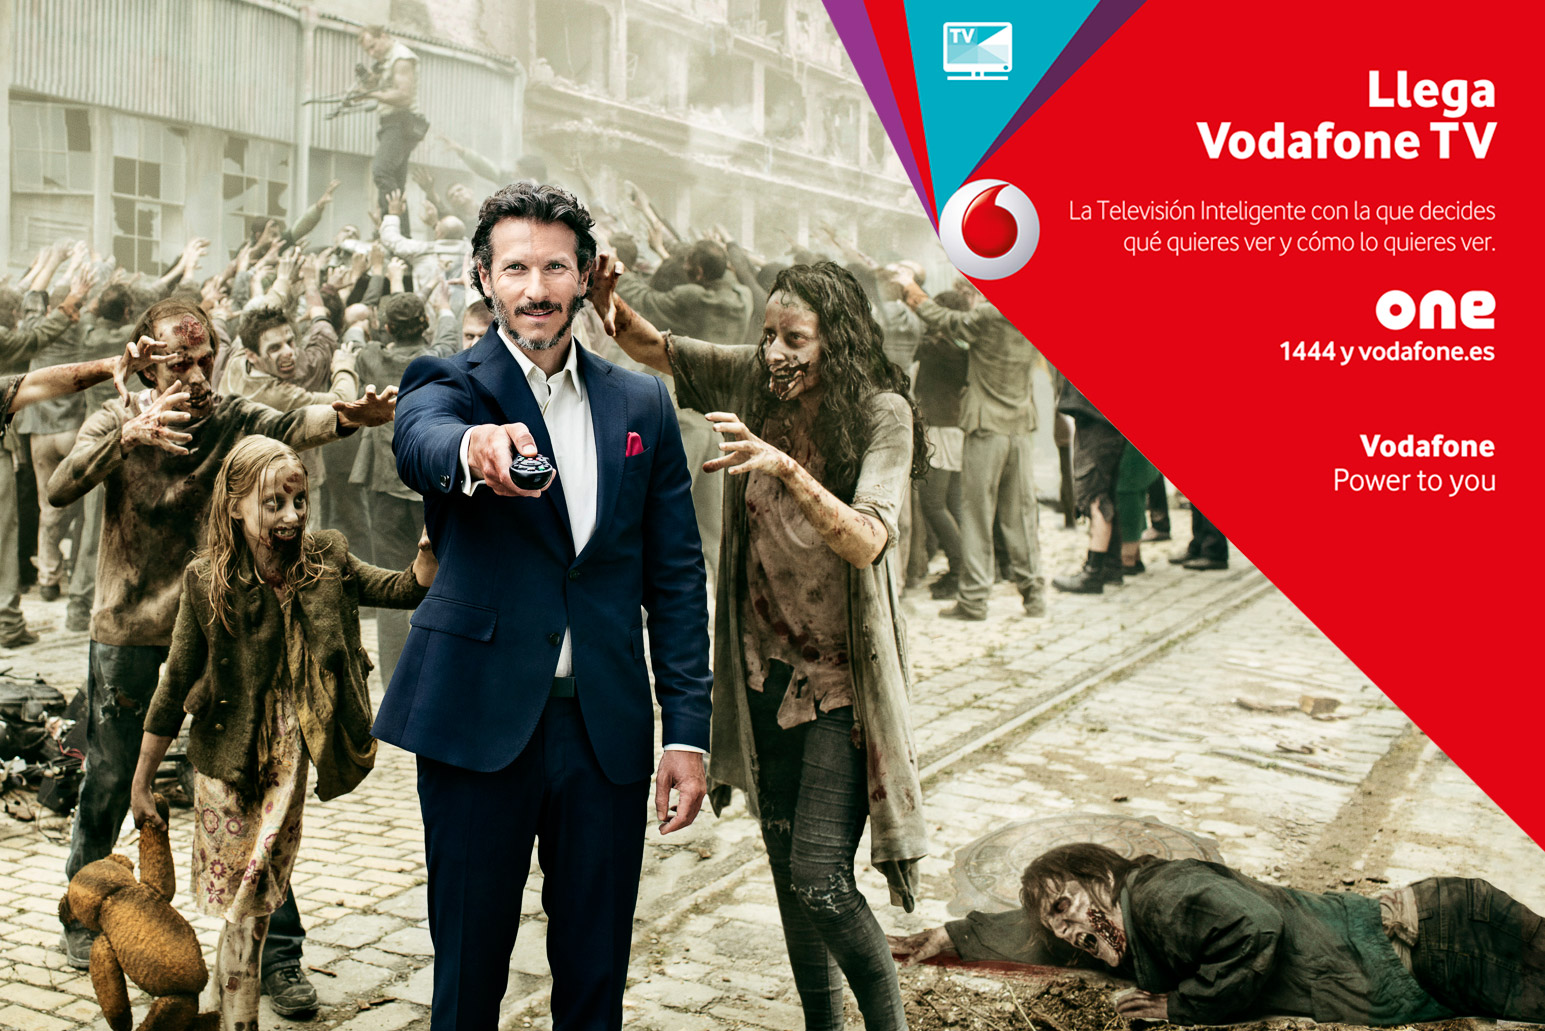 Client: Vodafone Agency: Sra RushmoreProduction: The Gang and Sunnyday